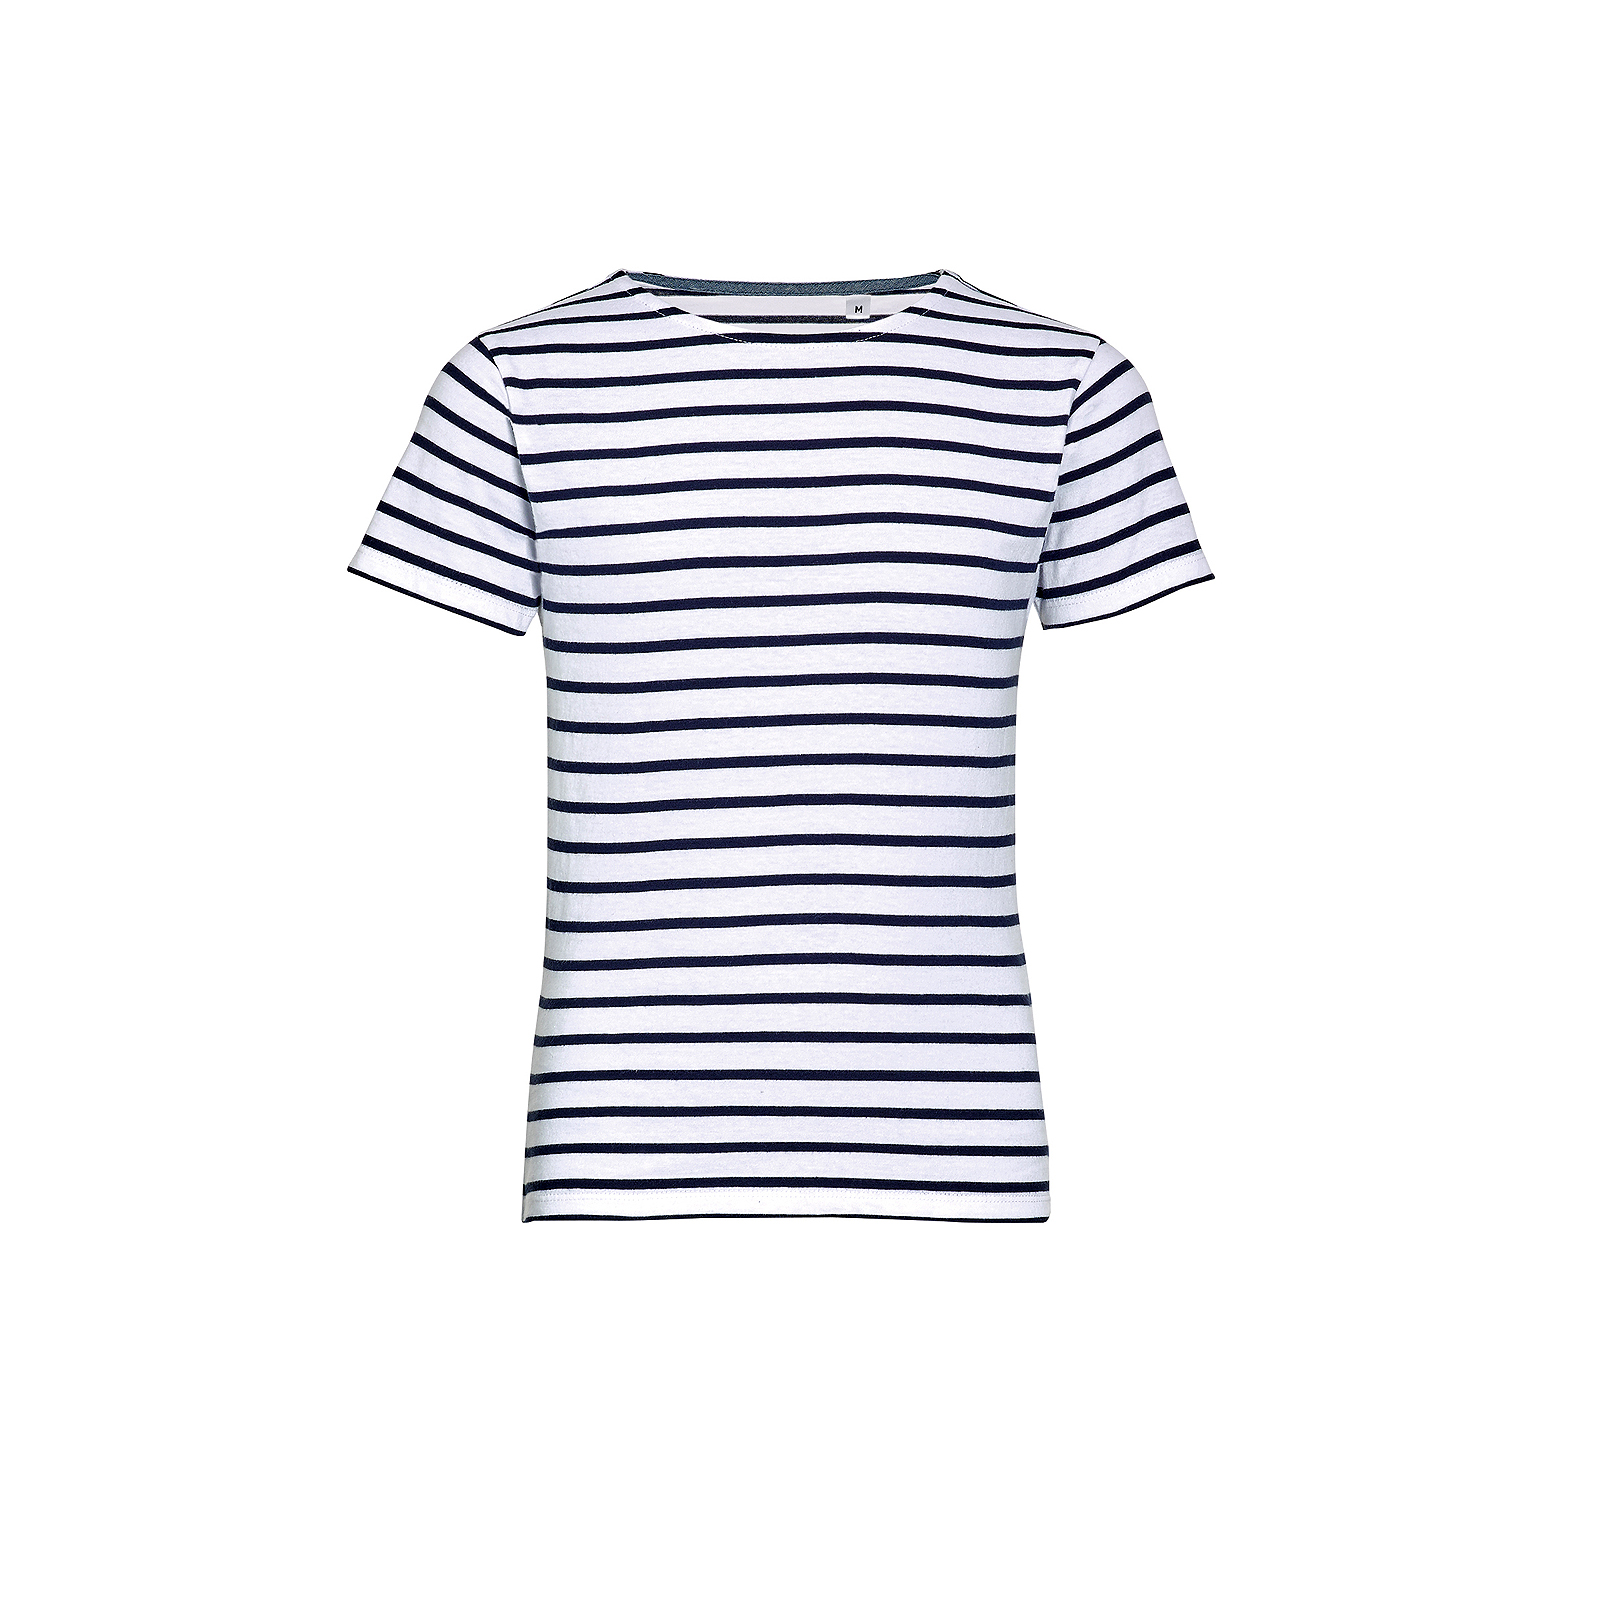 SOL/'S Kids Miles Stripe Short Sleeve T-Shirt Taped Neck Boys Girls Casual Summer